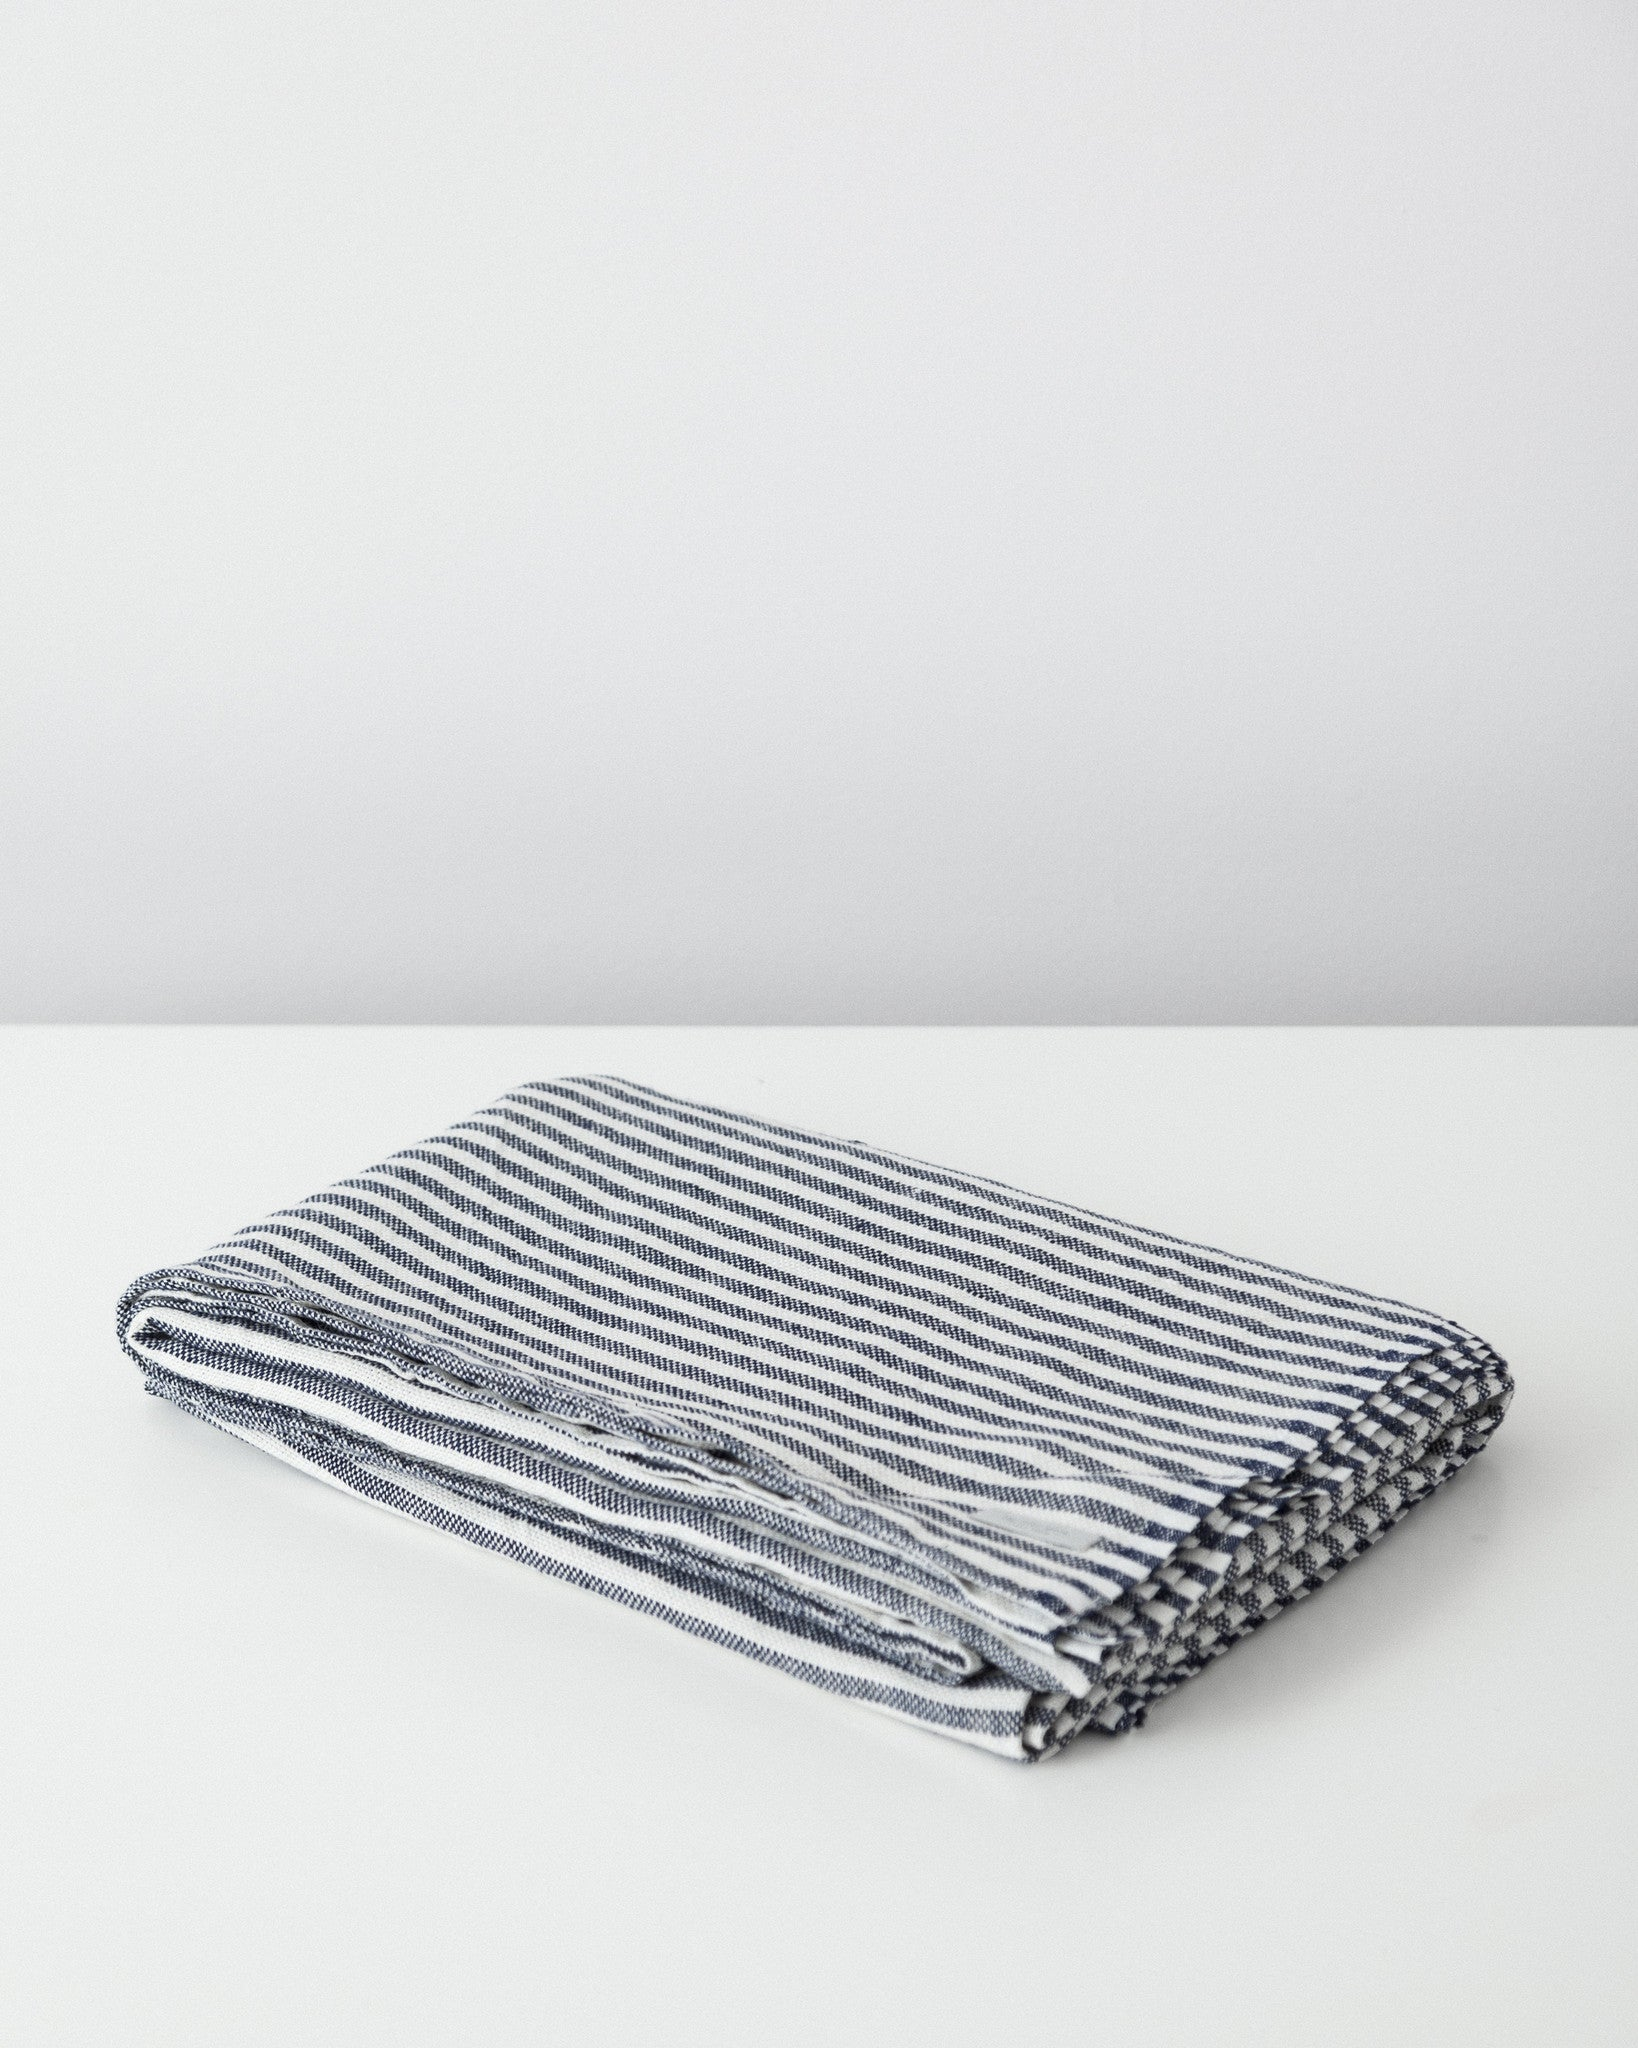 Fog Linen Work - Chambray Linen Blanket - Navy White Stripes